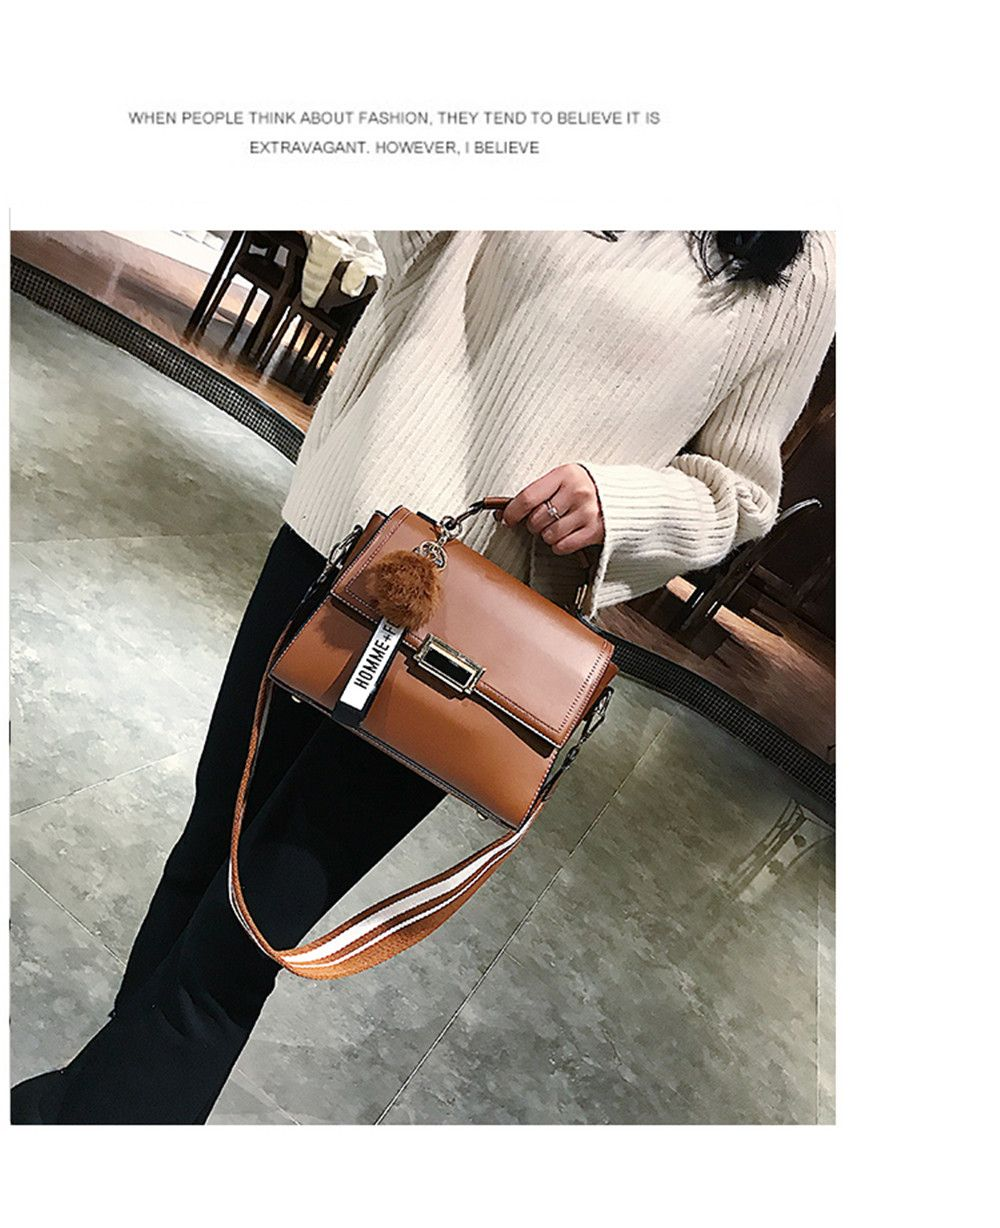 Fashionable Atmosphere Female Wild Messenger Shoulder Bag Wide Strap Small Square Package